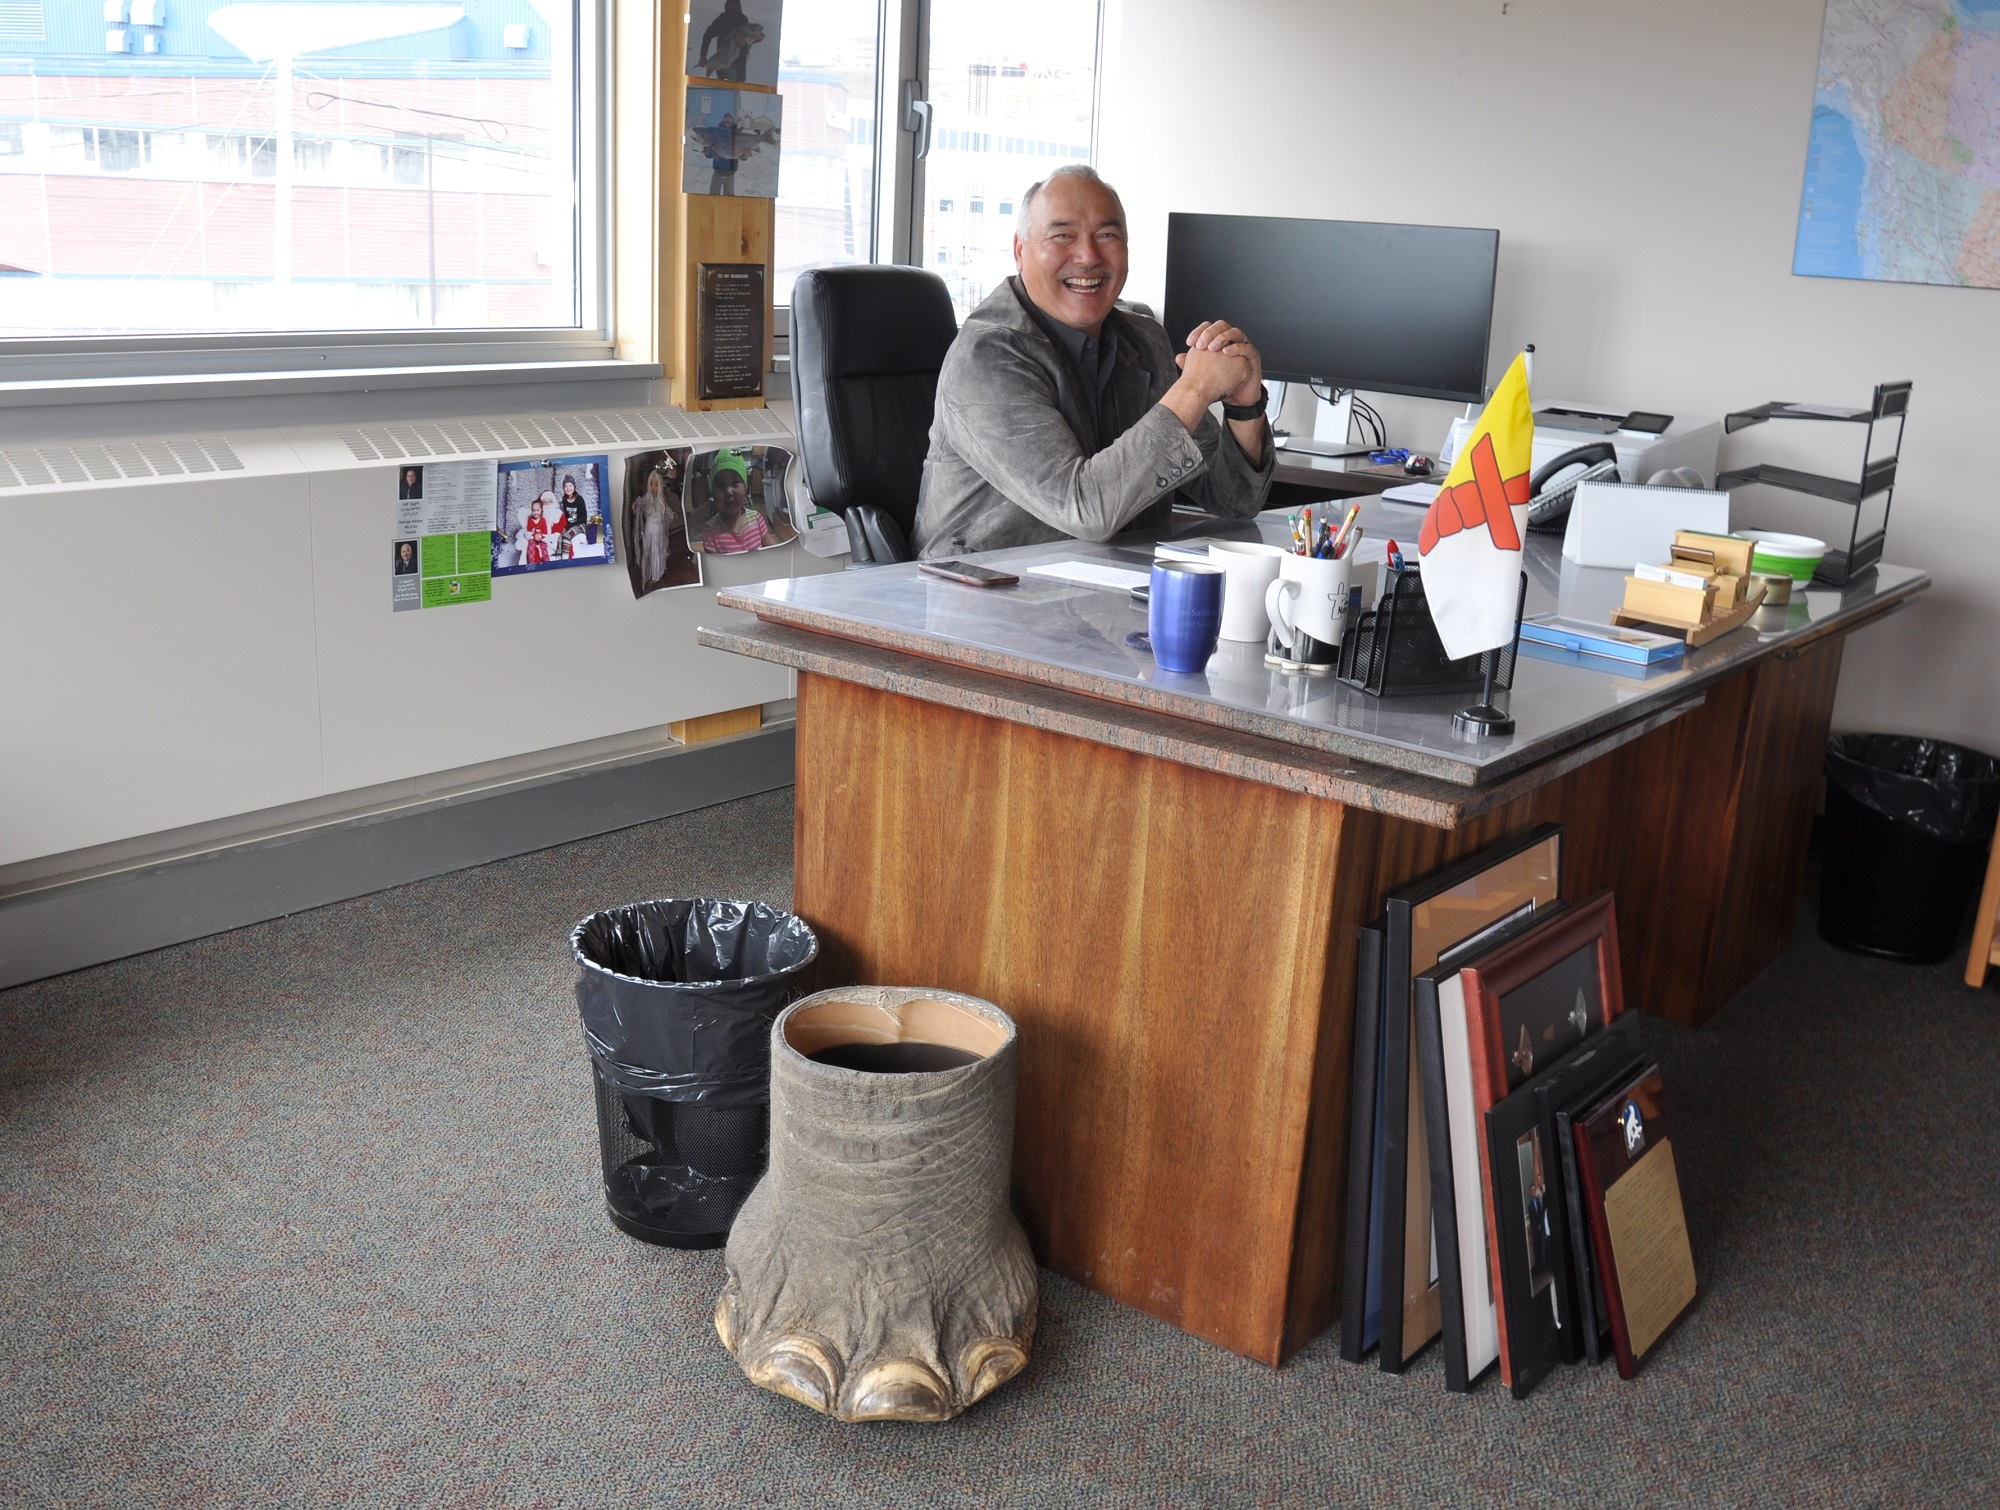 Nunavut Premier Joe Savikataaq sits at his desk in his office on the top floor of the legislative assembly building in Iqaluit. Next to his desk sits one of his hunting trophies, a wastebasket made from an elephant hunted by his son, Joe Jr., on a hunting safari the pair went on in Zimbabwe. (PHOTO BY SARAH ROGERS)